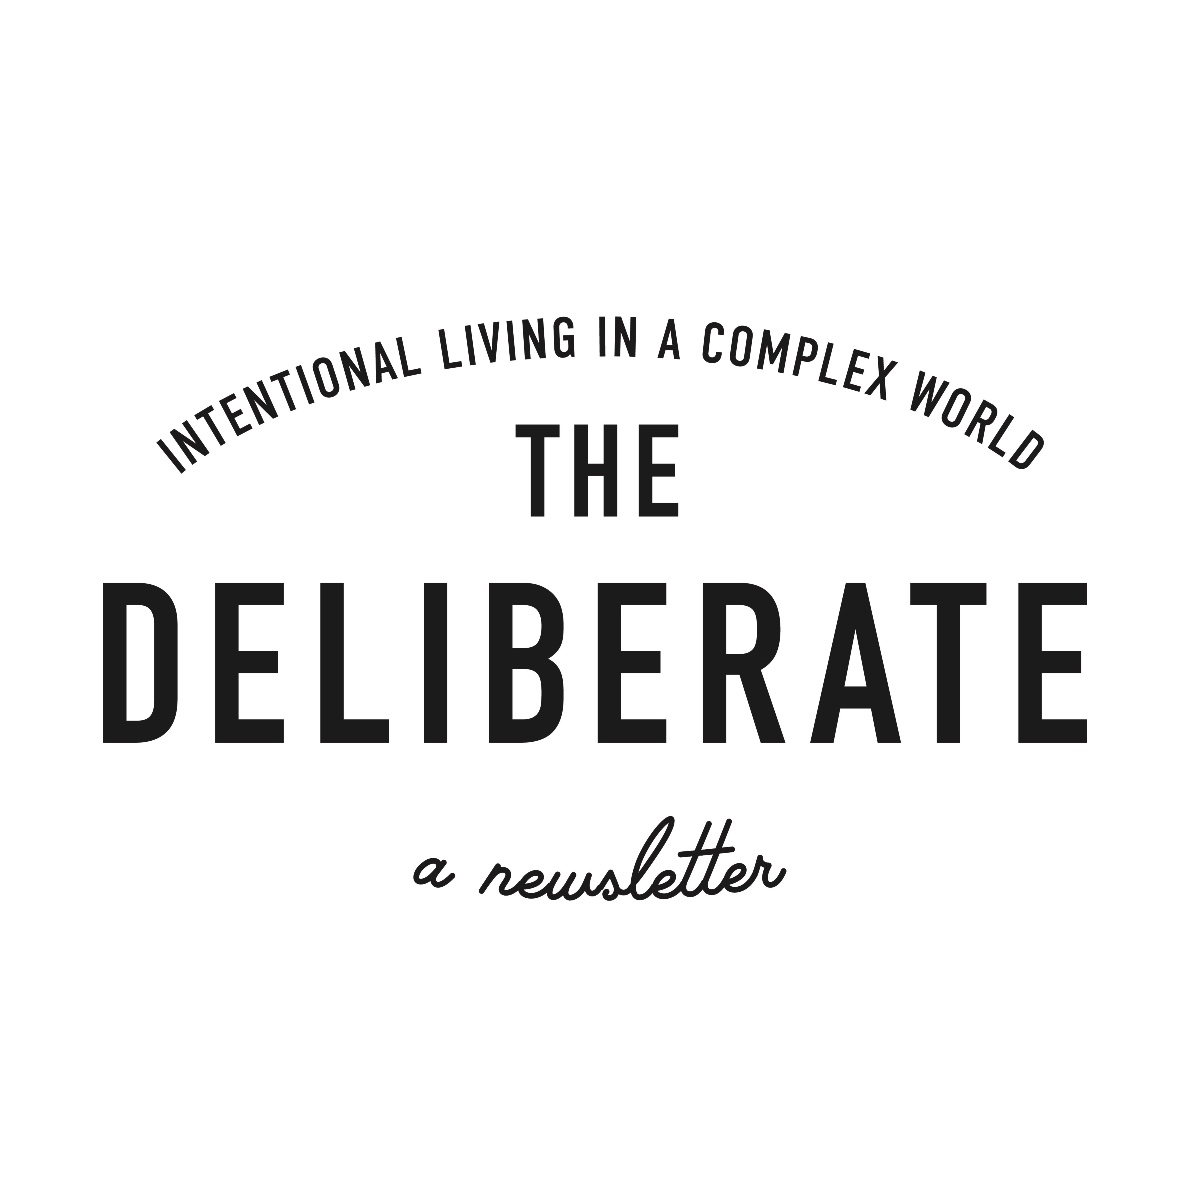 The Deliberate - The Deliberate is a weekly-ish newsletter that delves into attention and what it means to cultivate it, protect it, and generally treat it like the scarce resource that it is.